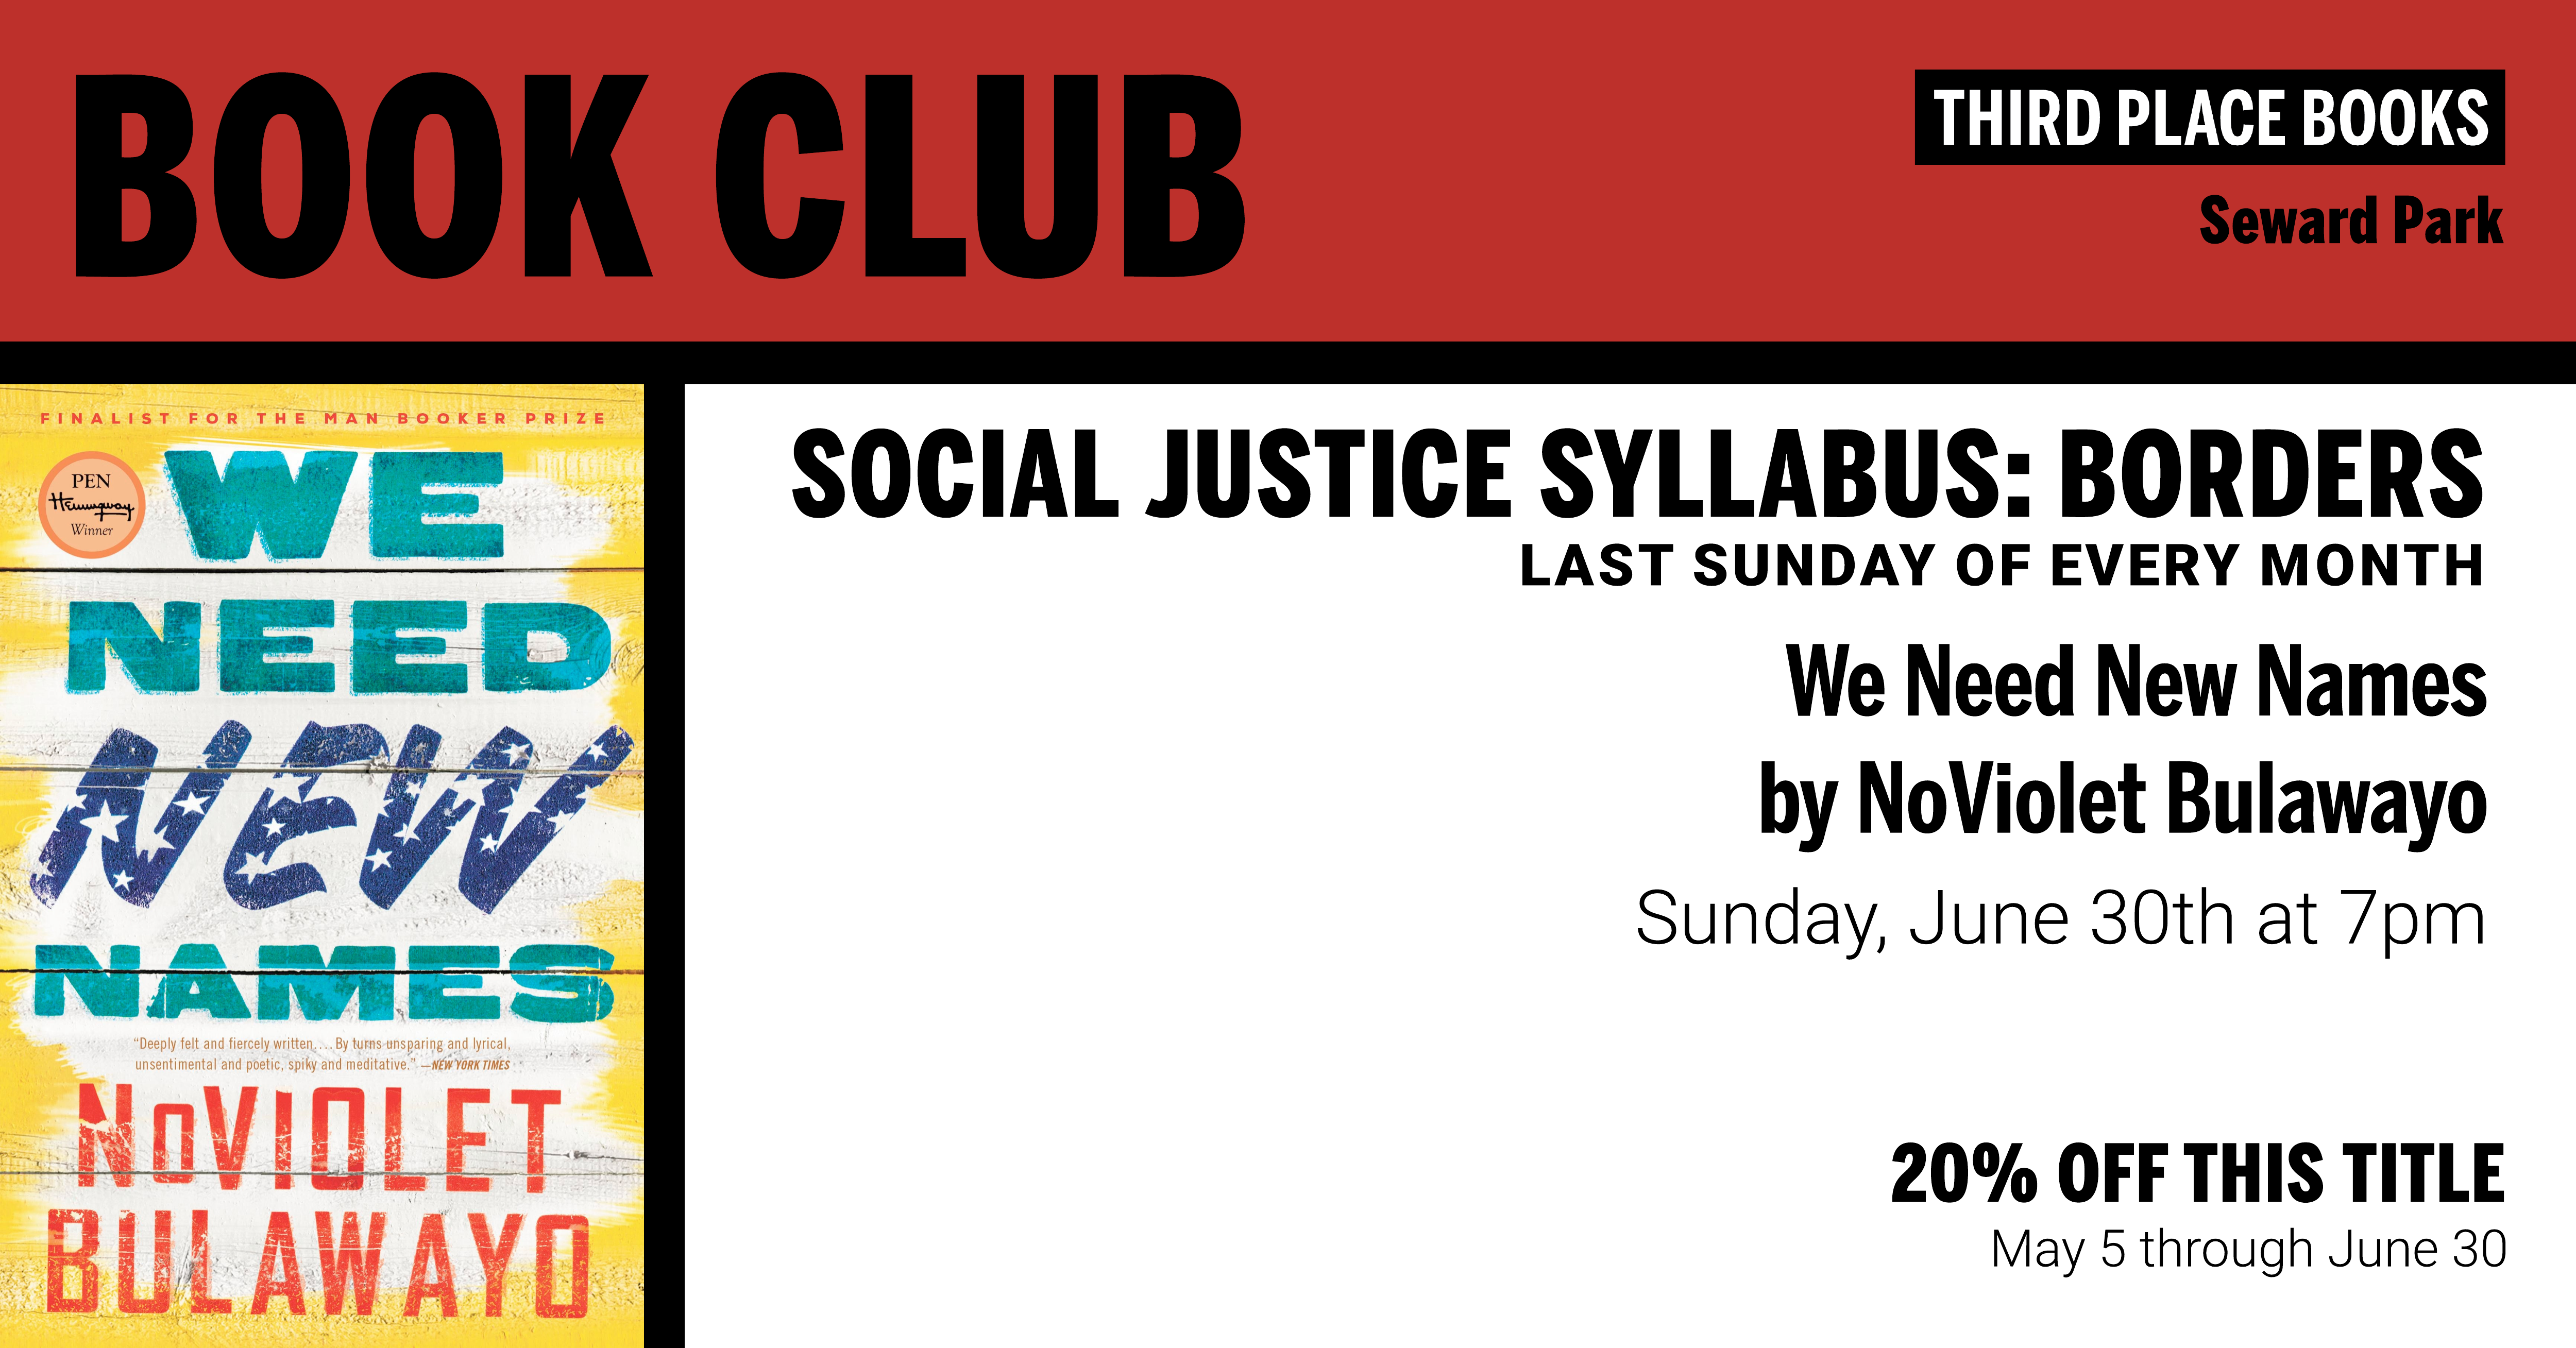 Social Justice Syllabus: Borders reading We Need New Names